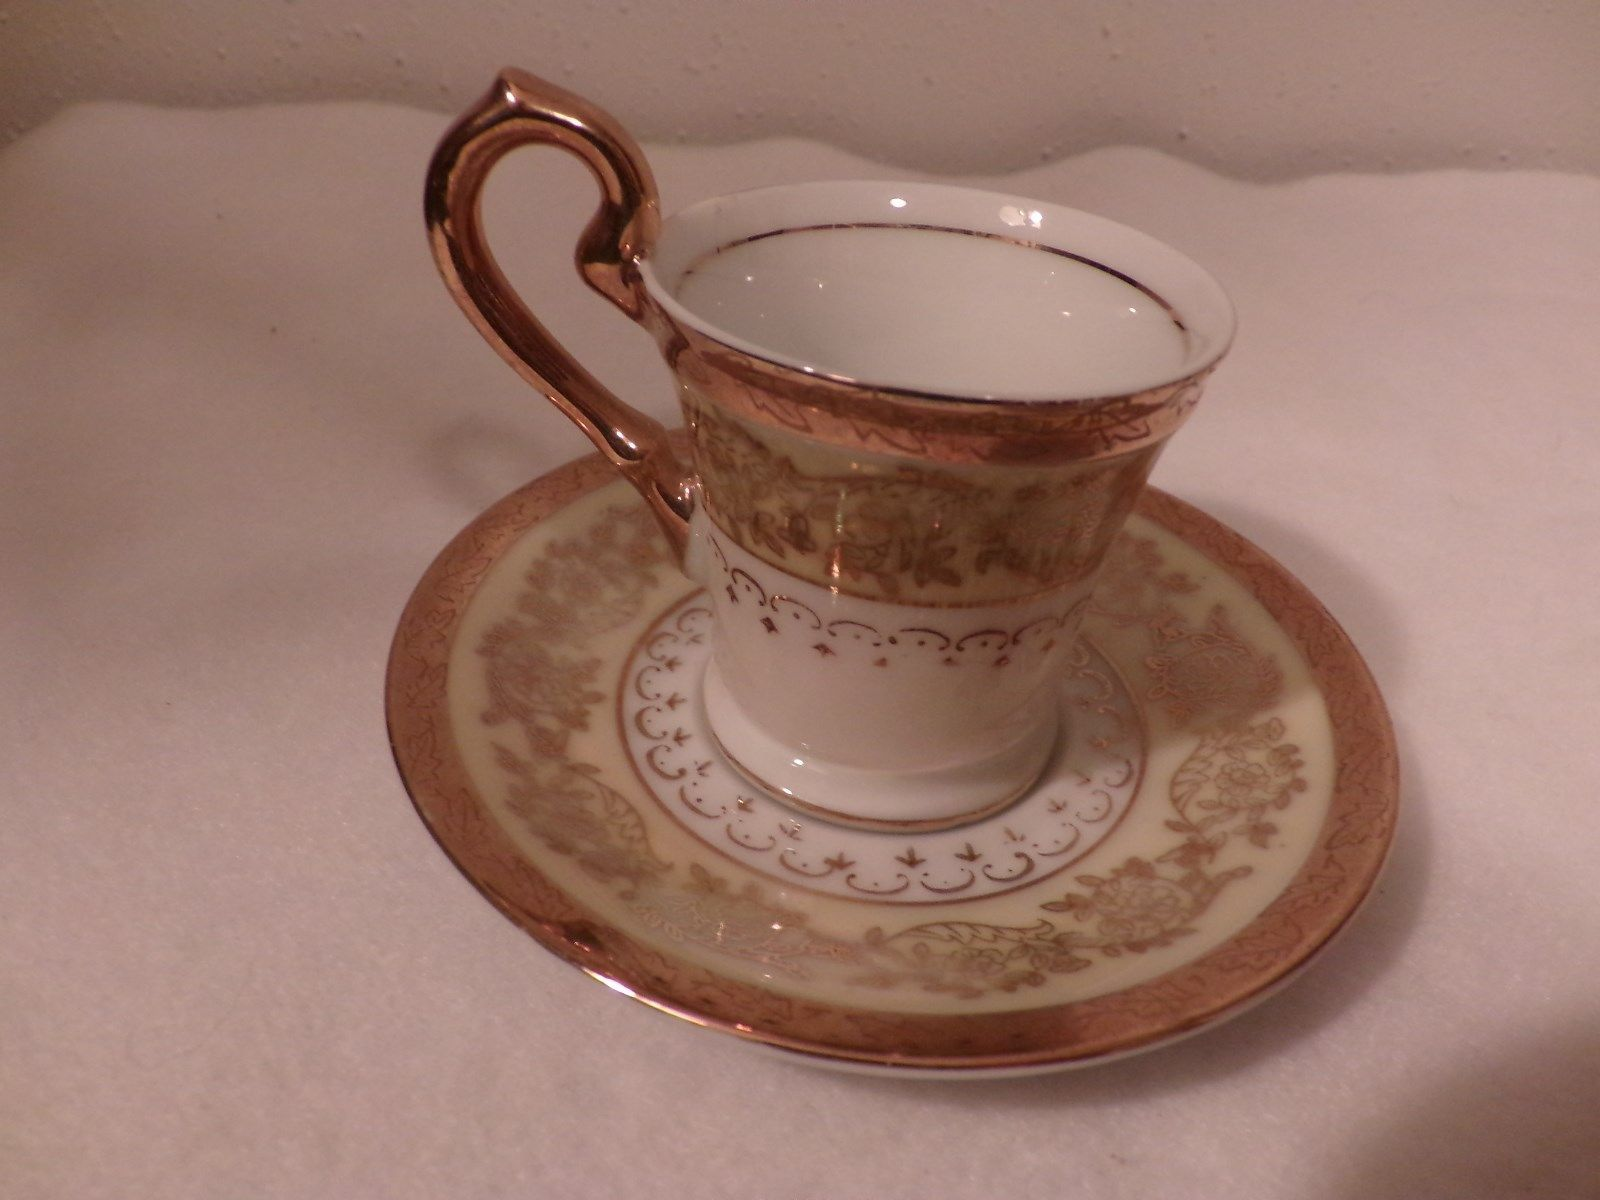 Royal Crown Tea Cup and Saucer | eBay